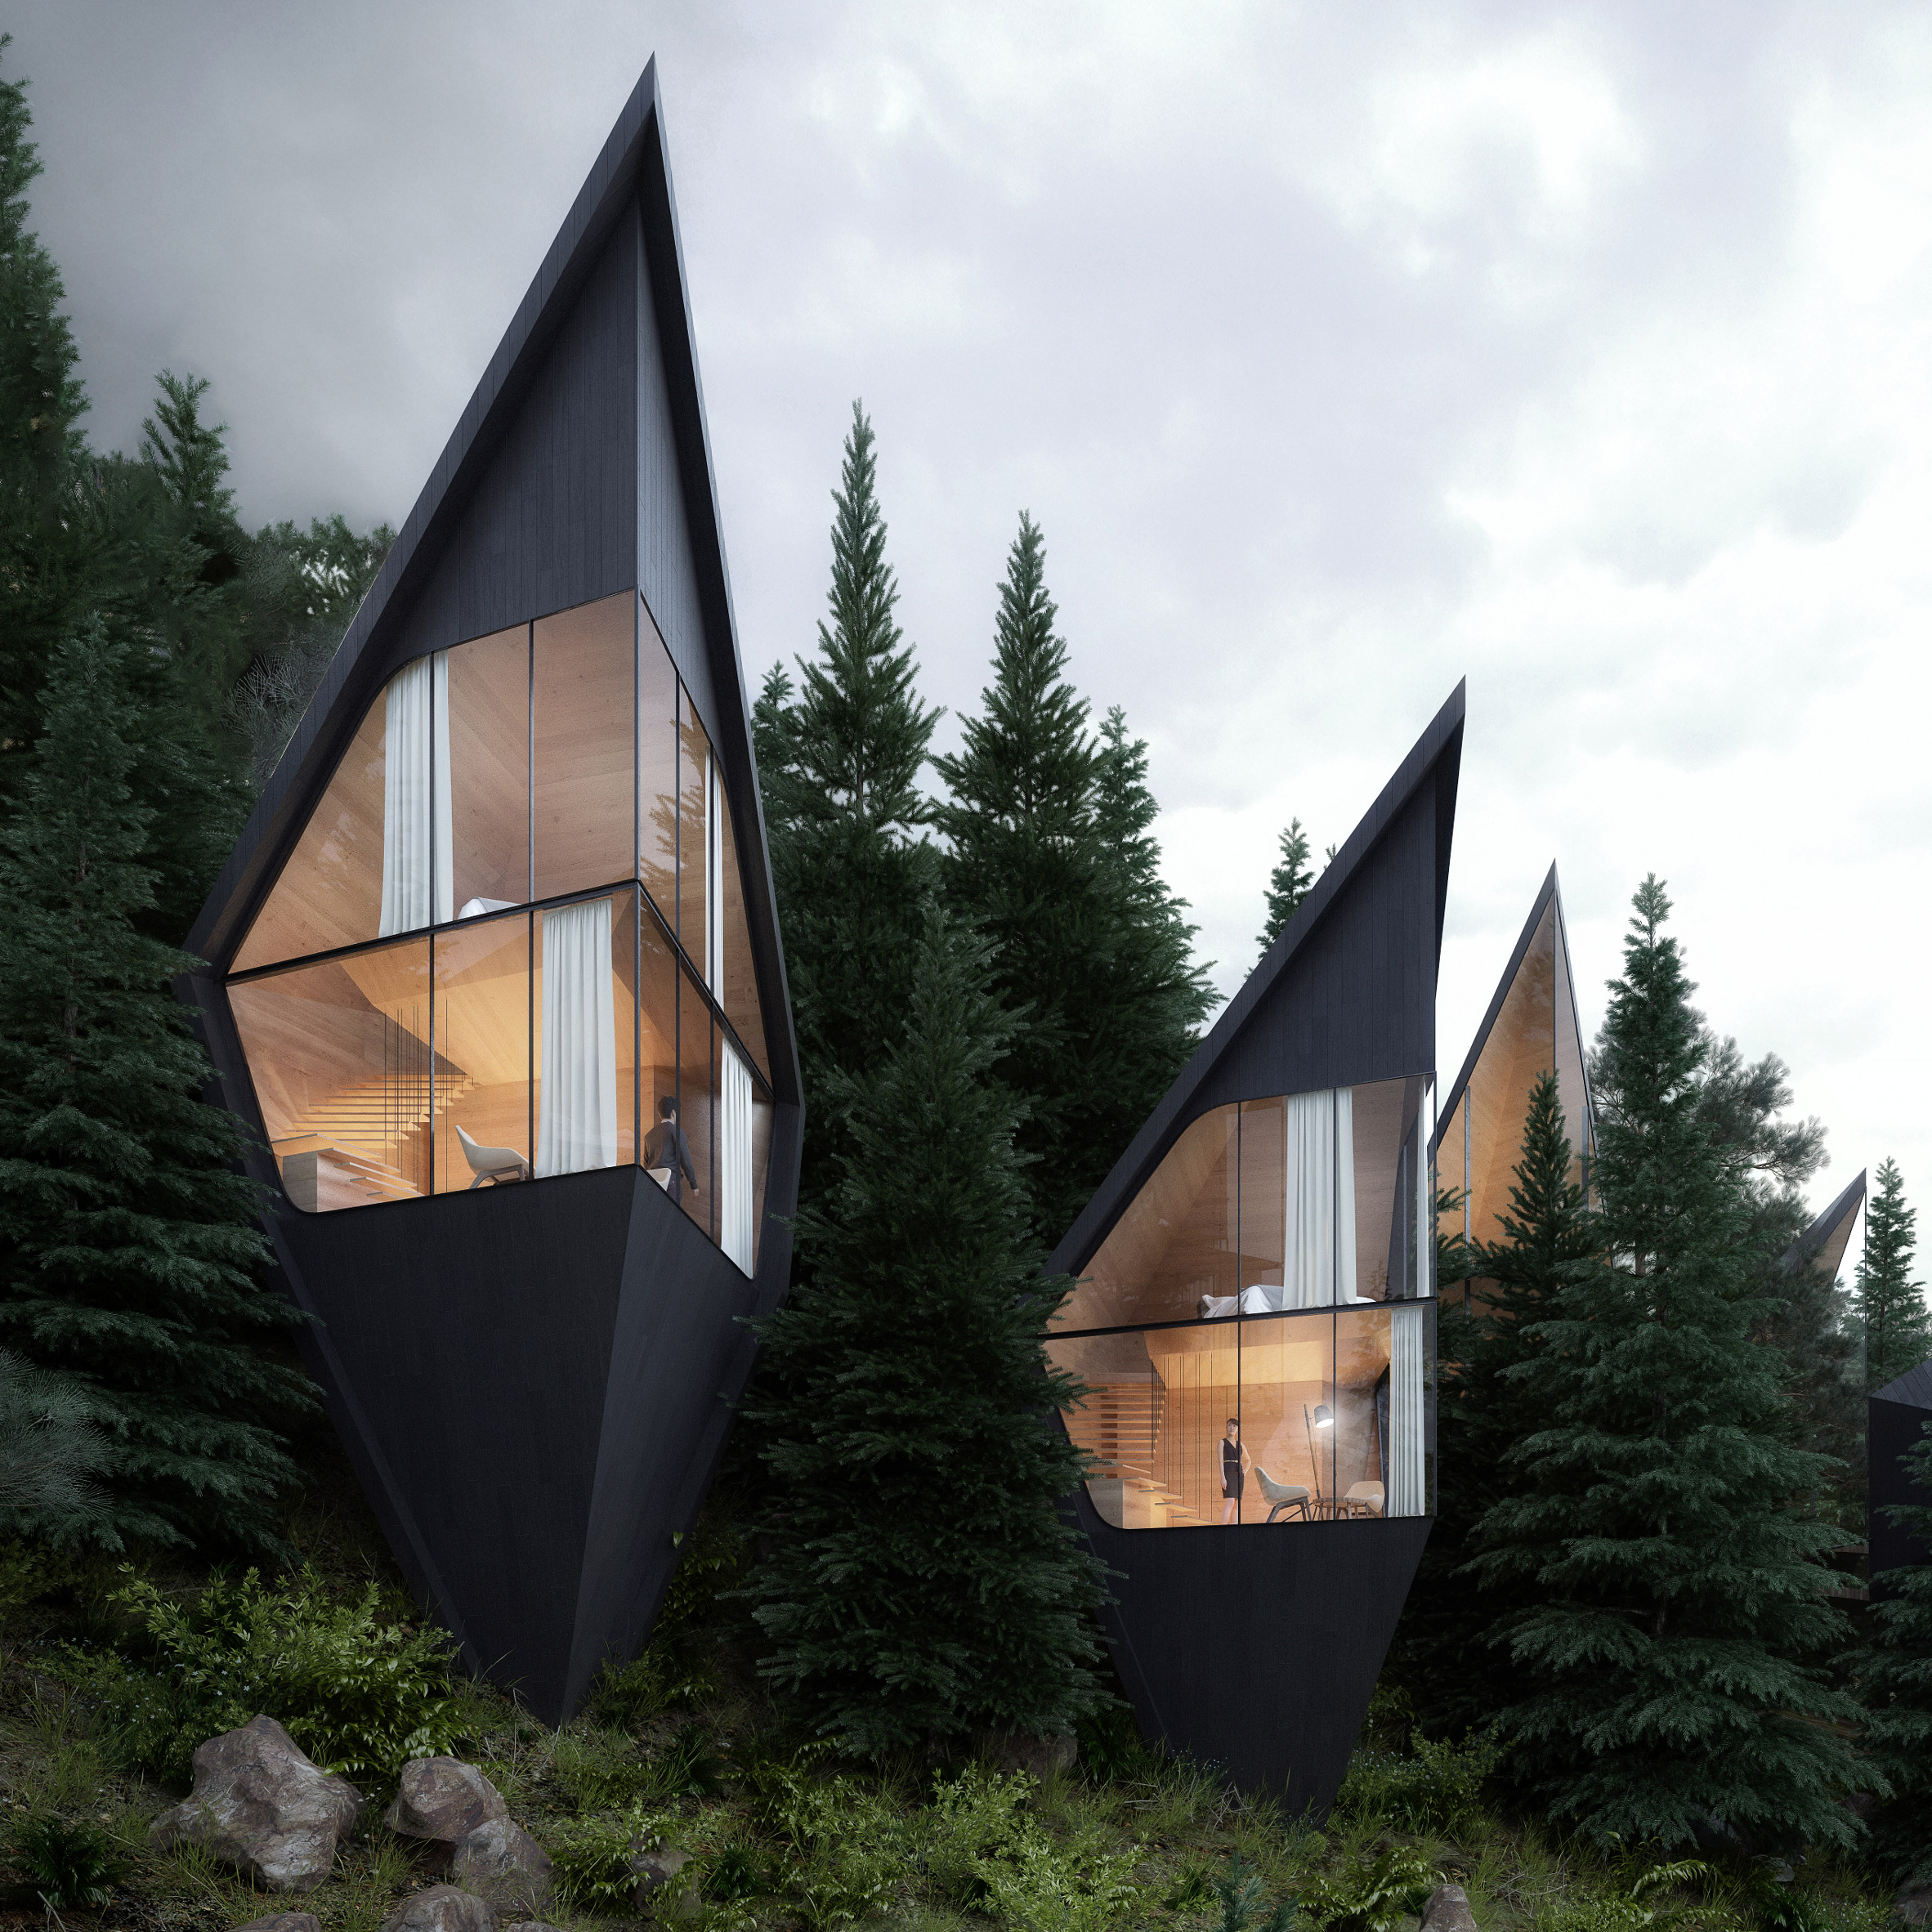 Peter pichler designs tree house hotel rooms for forest in italian dolomites